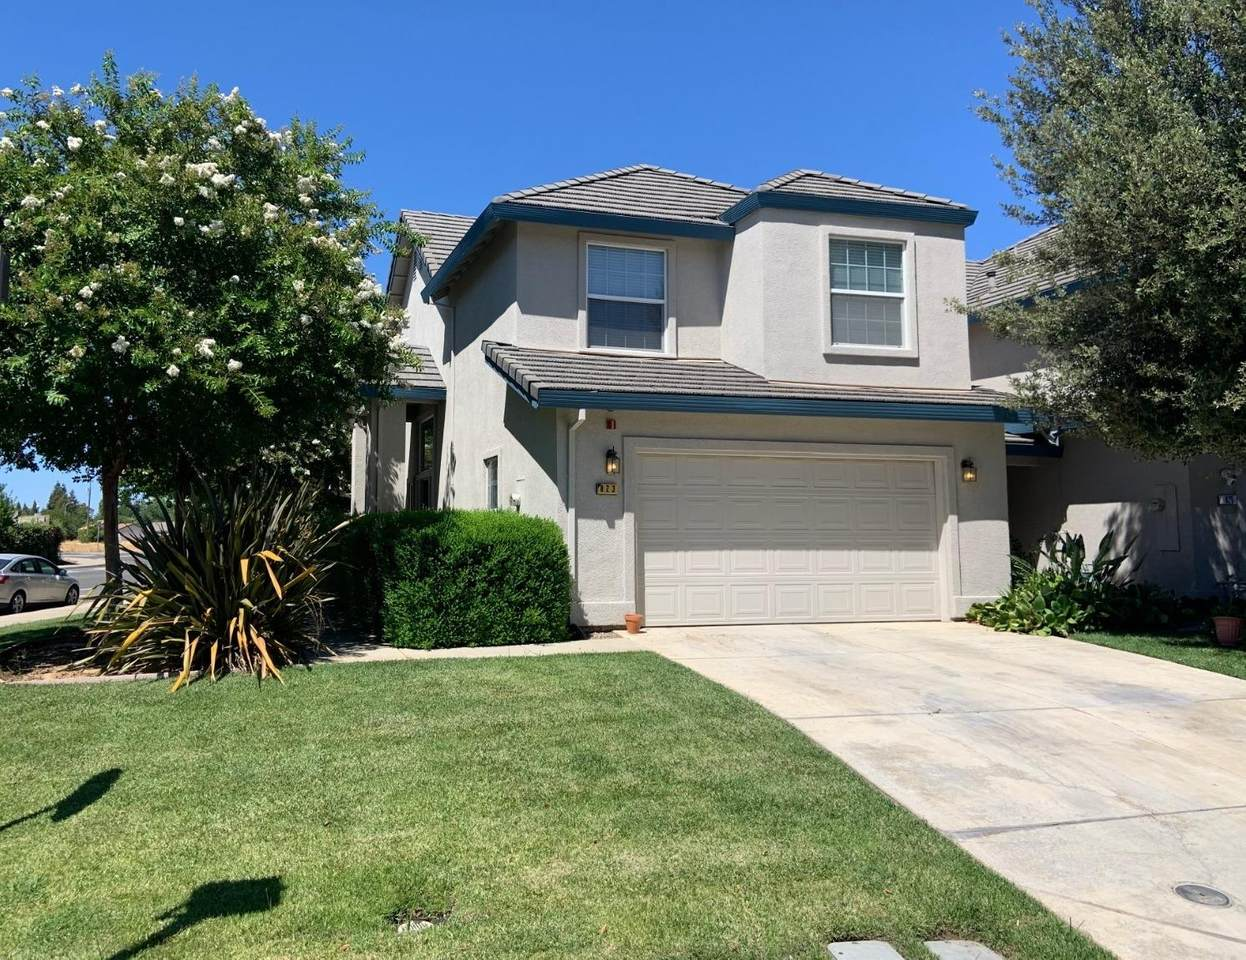 823 Grizzly Mesa Court - Photo 1